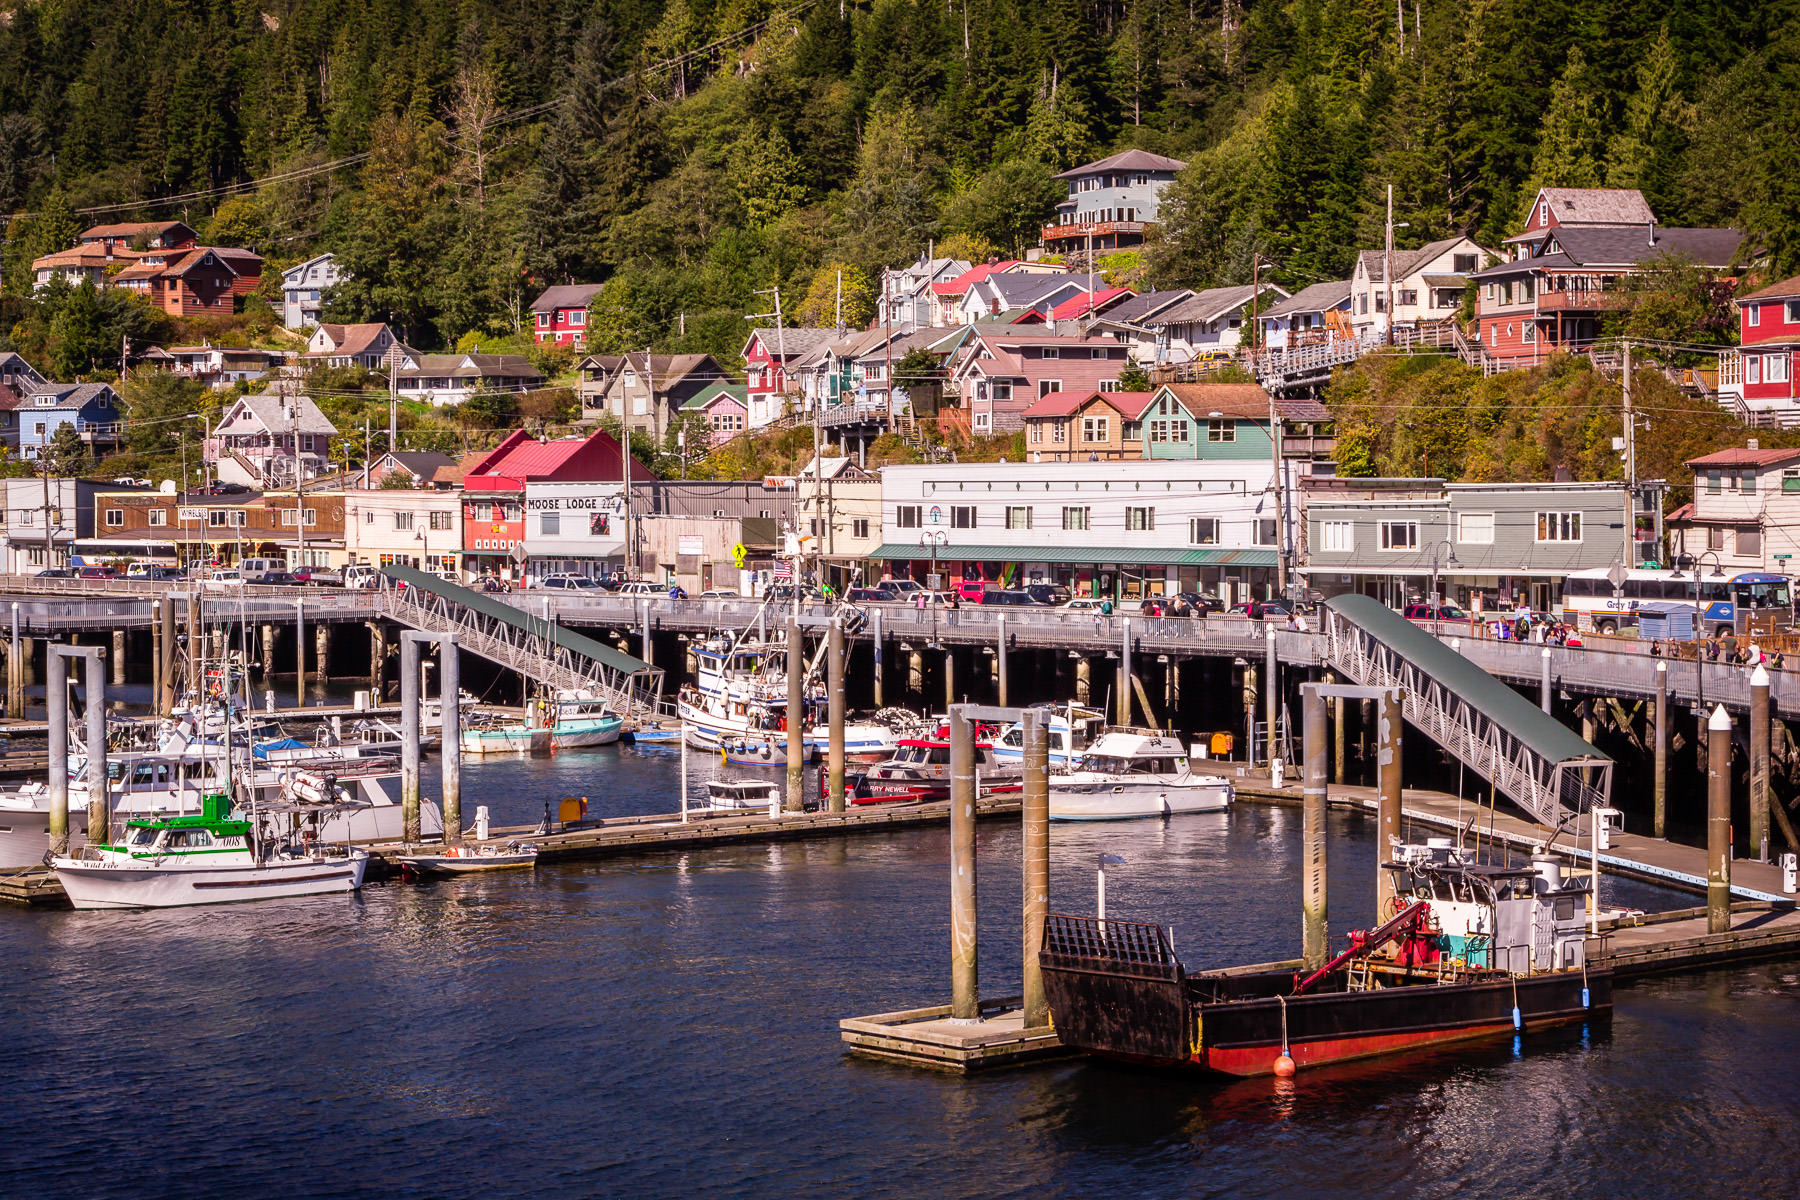 The busy harbor at Ketchikan, Alaska.